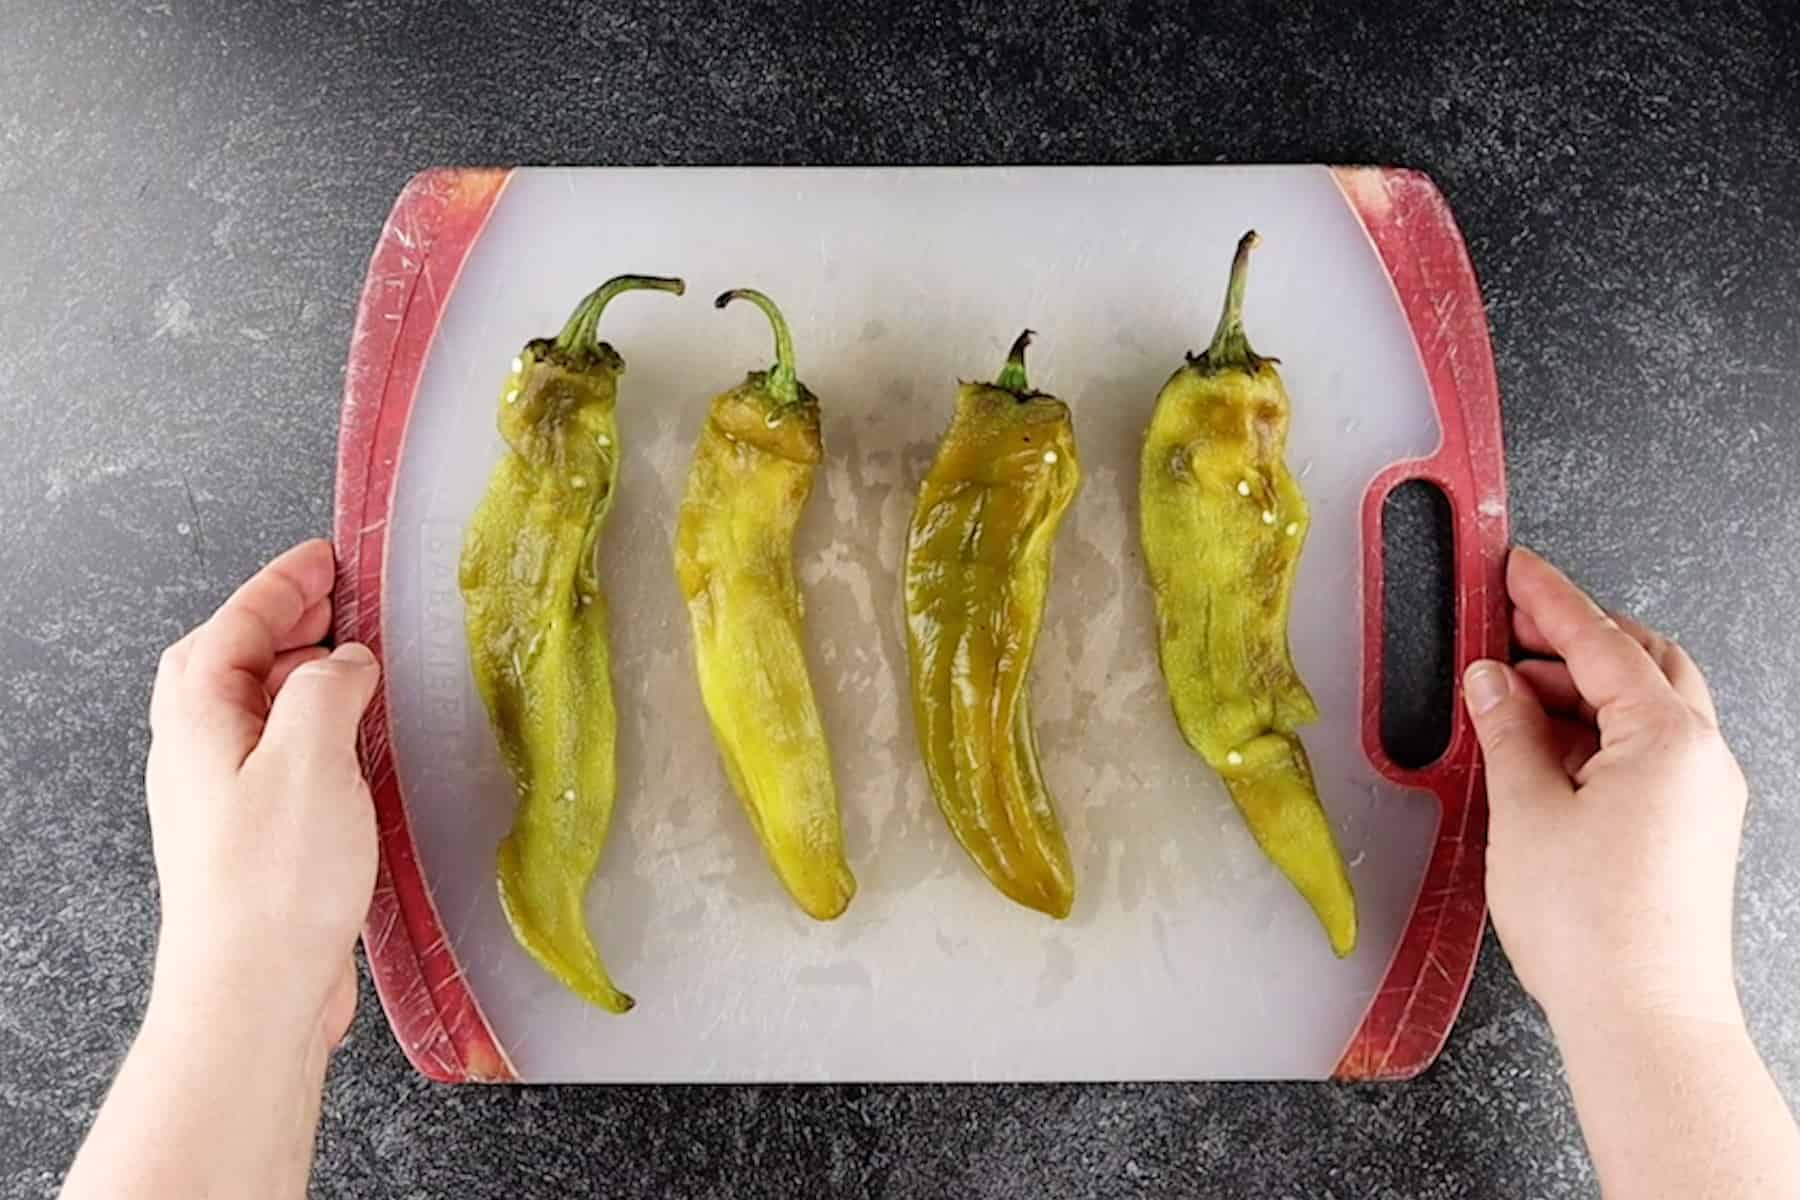 peeled green chiles